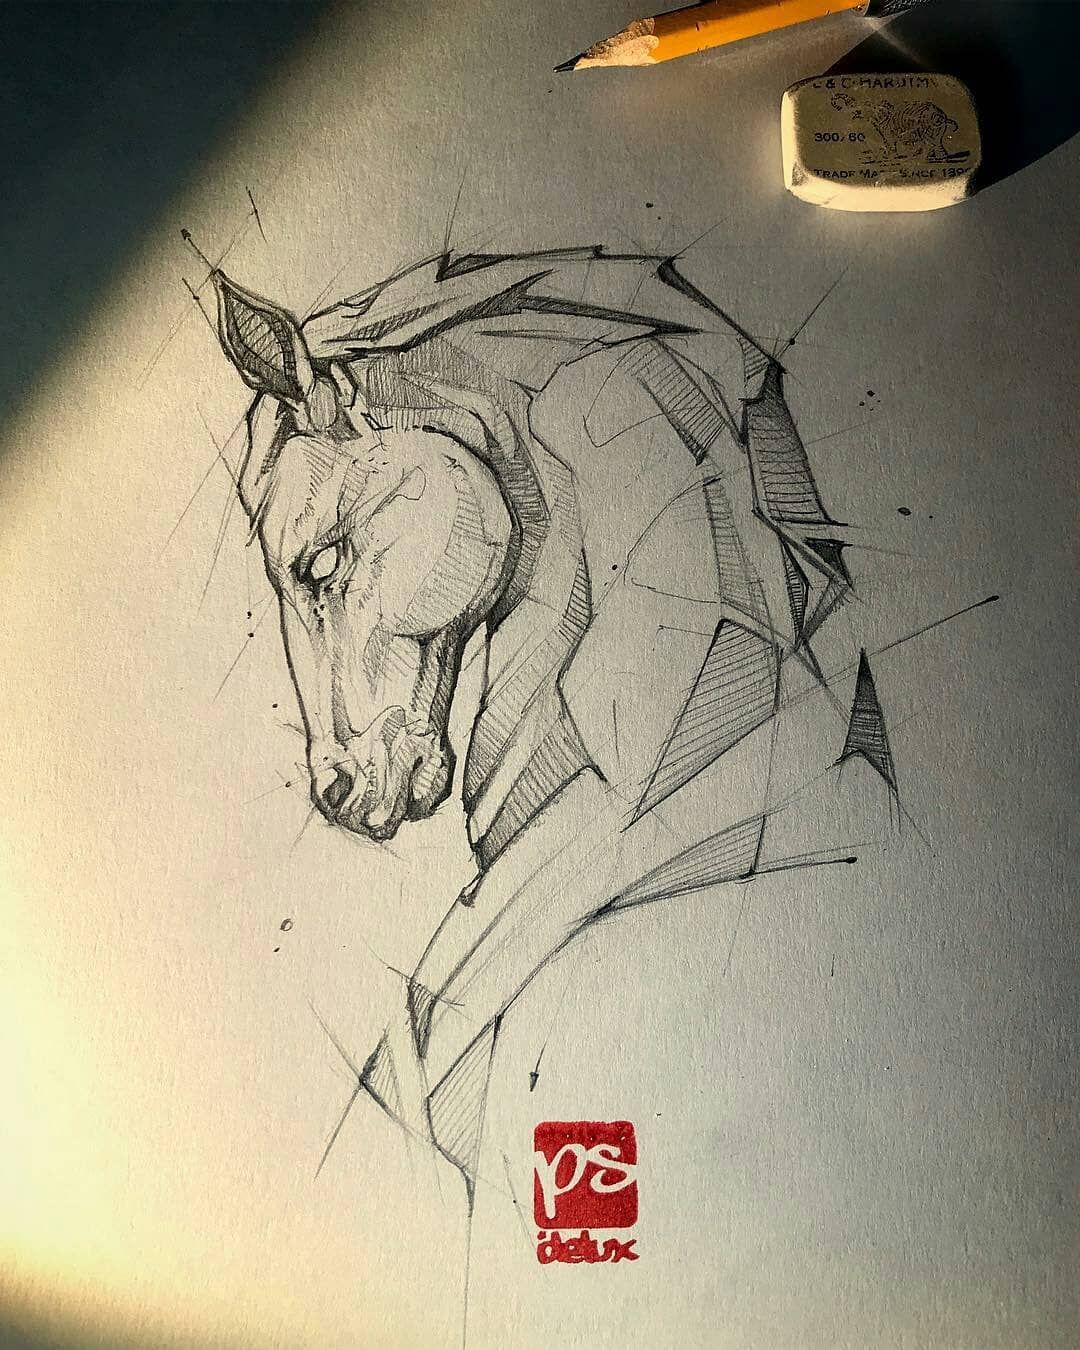 Hat S Your Favorite Animal Follow Art Dailydose For More Art And Use Our Hashtag Art Dailydose For A Chance To Be Feat Horse Tattoo Sketches Art Sketches